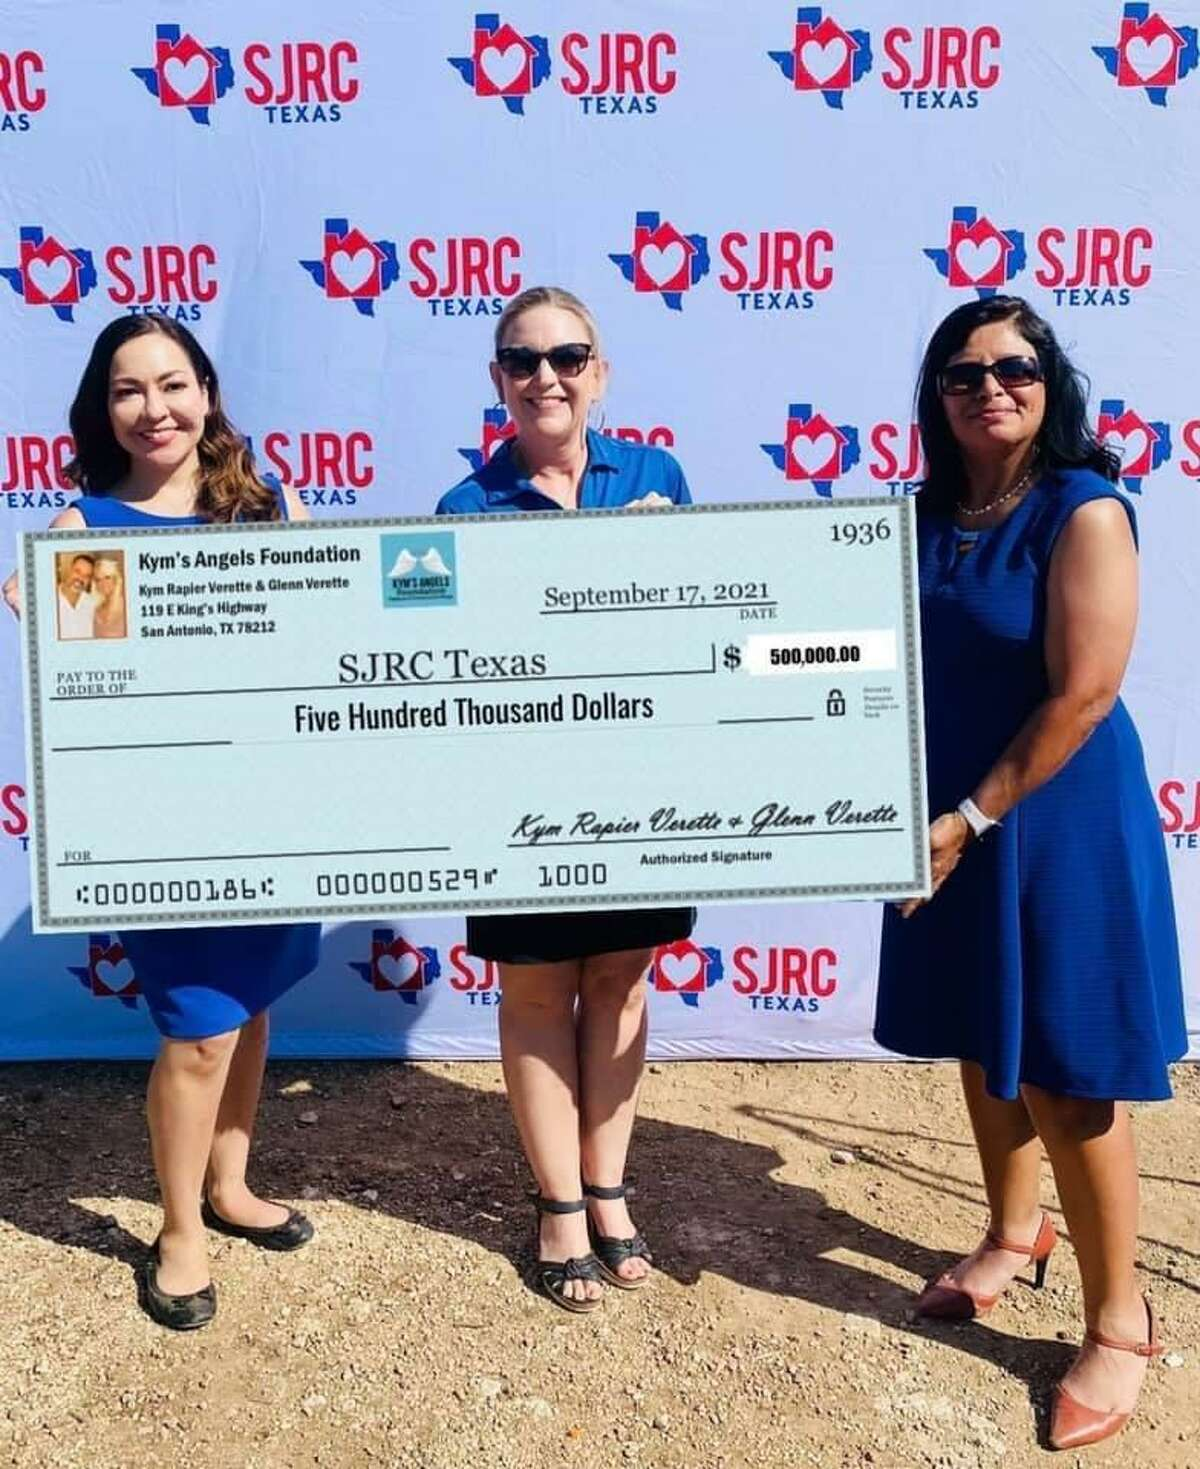 SJRC Texas Chief Development Officer Cynthia Lopez, from left, SJRC CEO Tara Roussett and a spokesperson for the Verettes, Yolanda Valenzuela, display a giant check marking the Verettes' $500,000 donation.